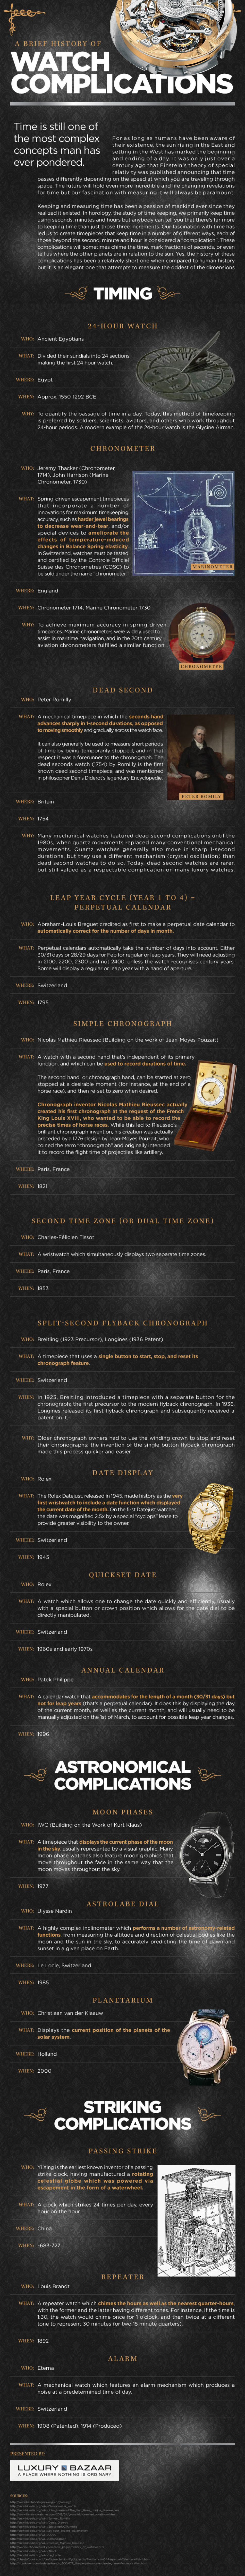 A Brief History of Watch Complications Infographic